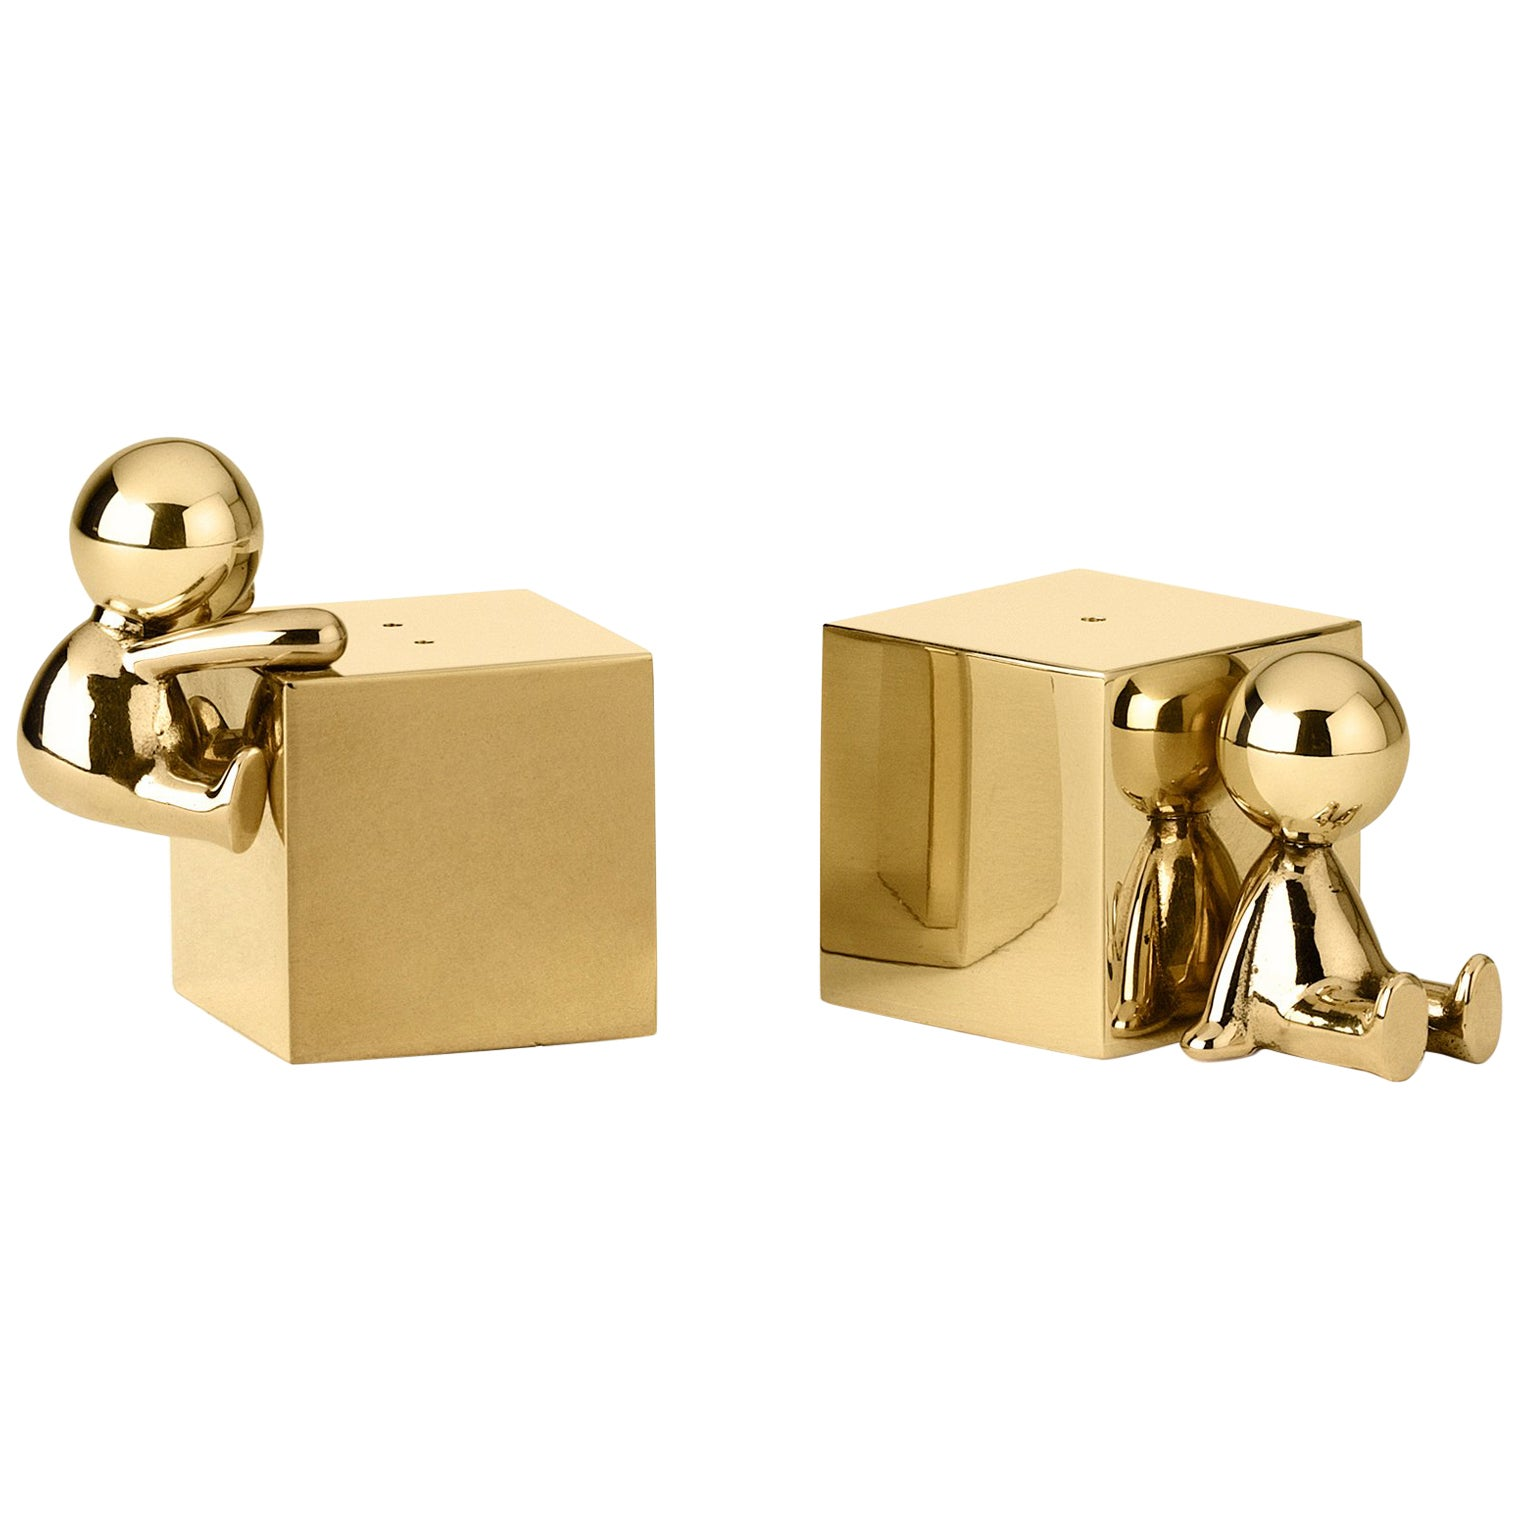 Ghidini 1961 Omini Salt and Pepper Set in Gold by Stefano Giovannoni